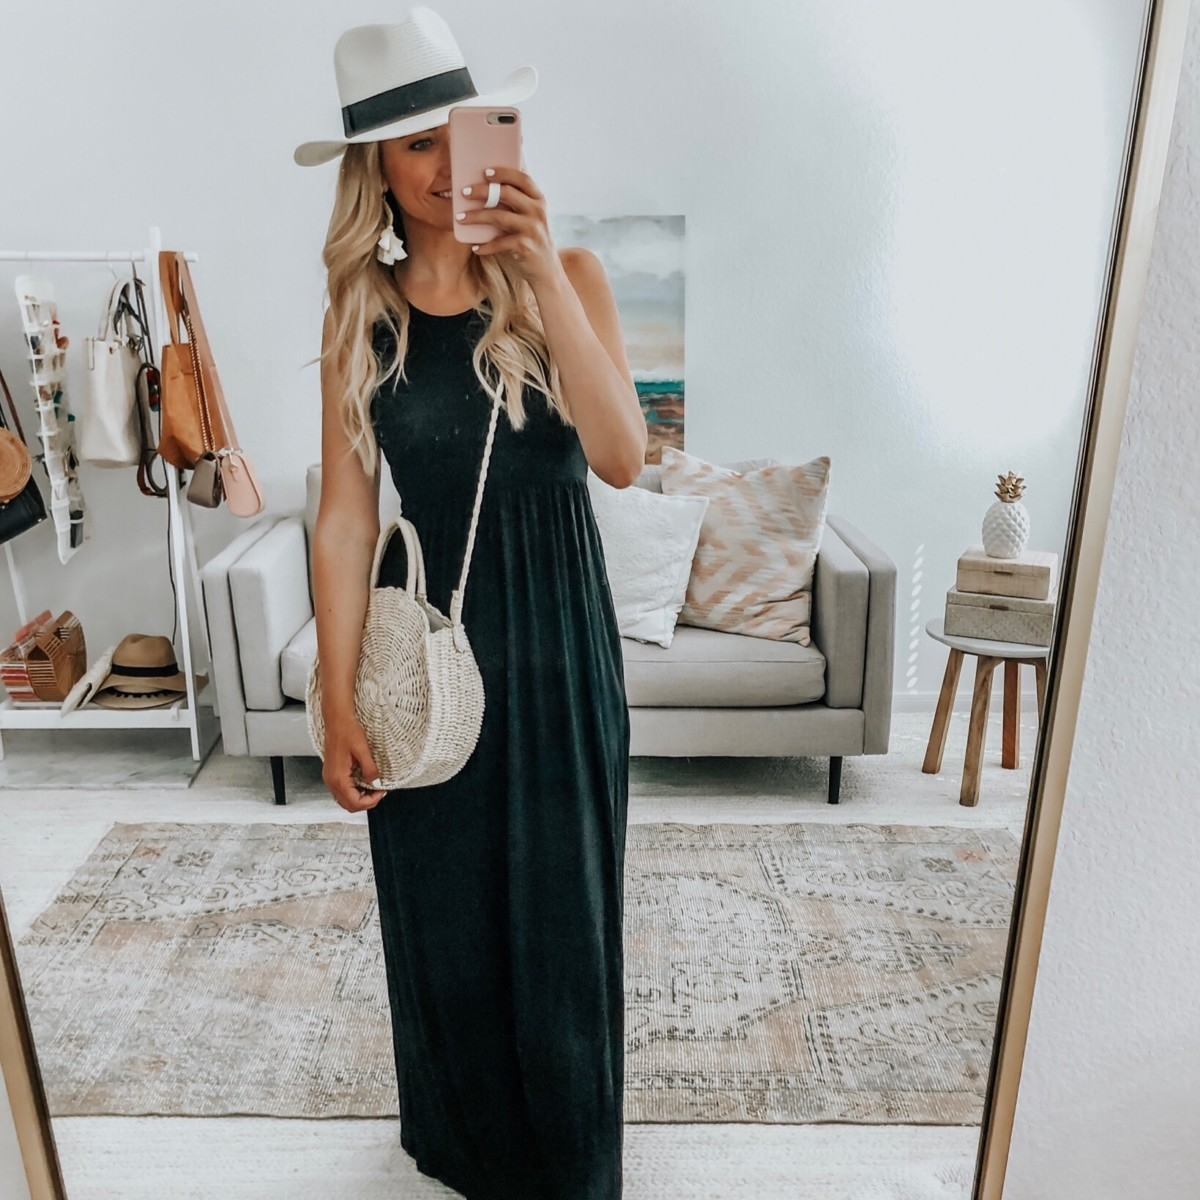 amazon prime day 2019 | Amazon Prime Day 2019 by popular Houston life and style blog, Haute and Humid: image of woman taking a selfie in full body mirror and wearing a black GRECERELLE Women's Sleeveless Racerback Loose Plain Maxi Dresses Casual Long Dresses with Pockets, Airrioal Women Straw Crossbody Bag Summer Beach Weave Shoulder Bag, white Lanzom Women Wide Brim Straw Panama Roll up Hat Fedora Beach Sun Hat UPF50+, and white Meangel Rattan Tassel Earrings for Women Bohemian Statement Handmade Woven Drop Dangle Earrings.